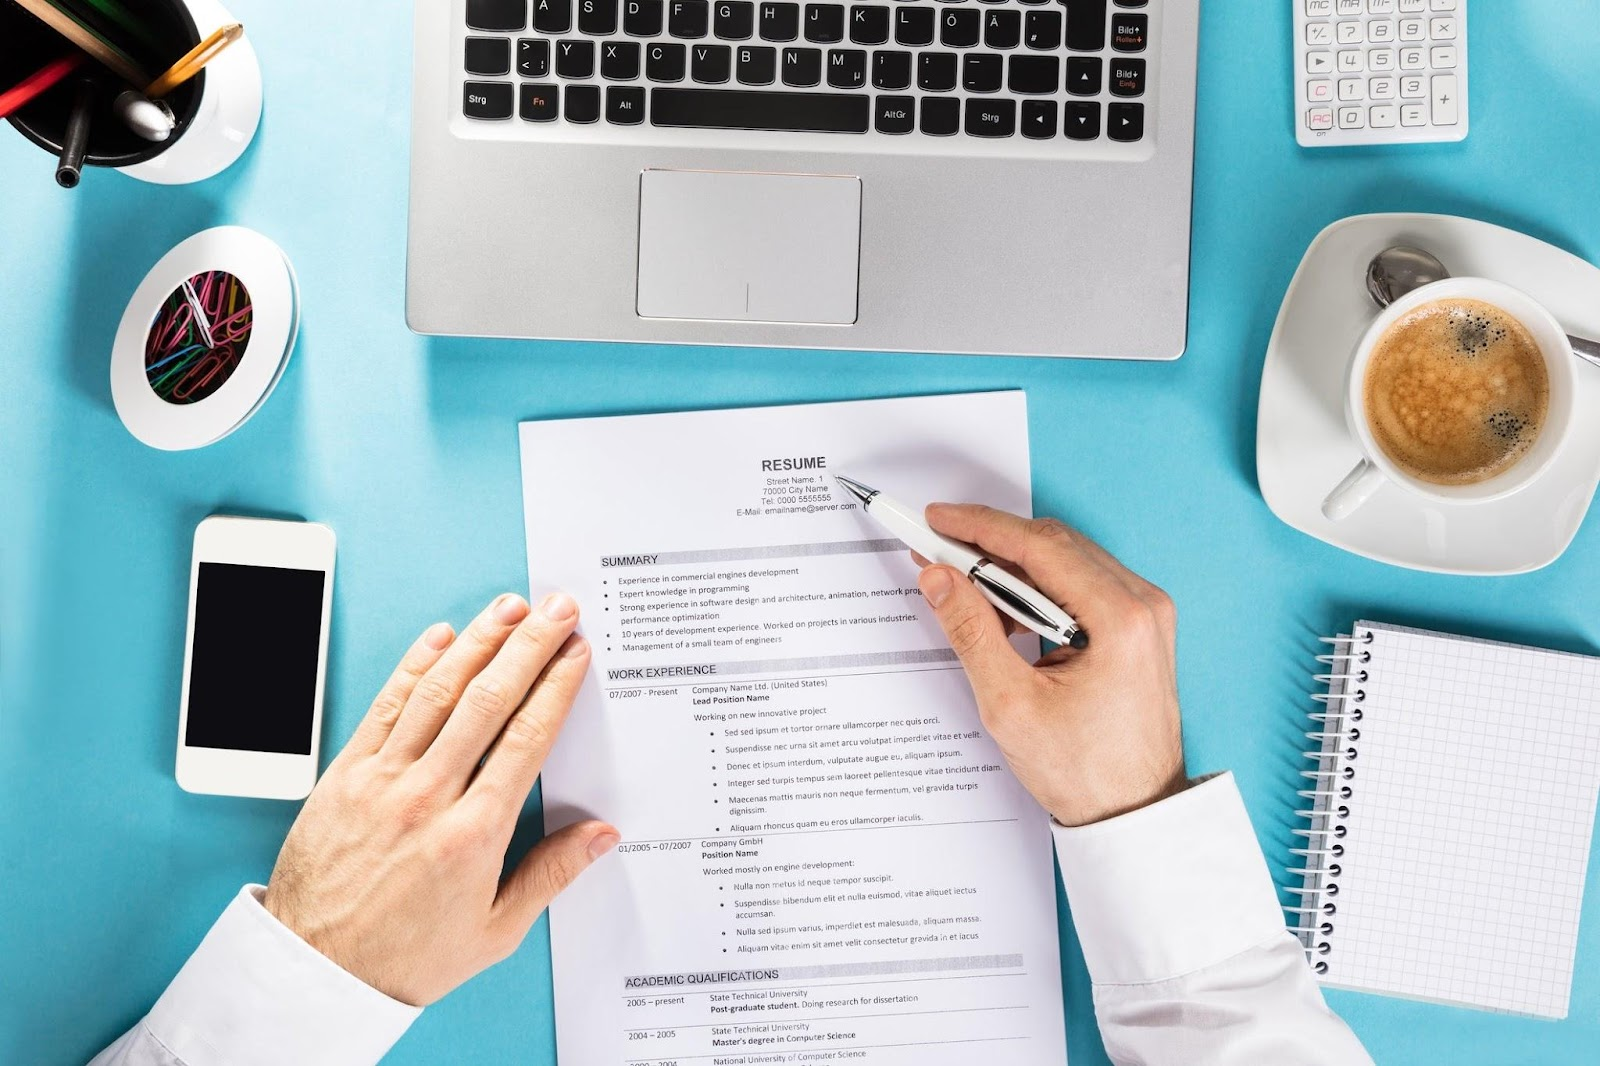 The Best Skills For A Resume In 2021